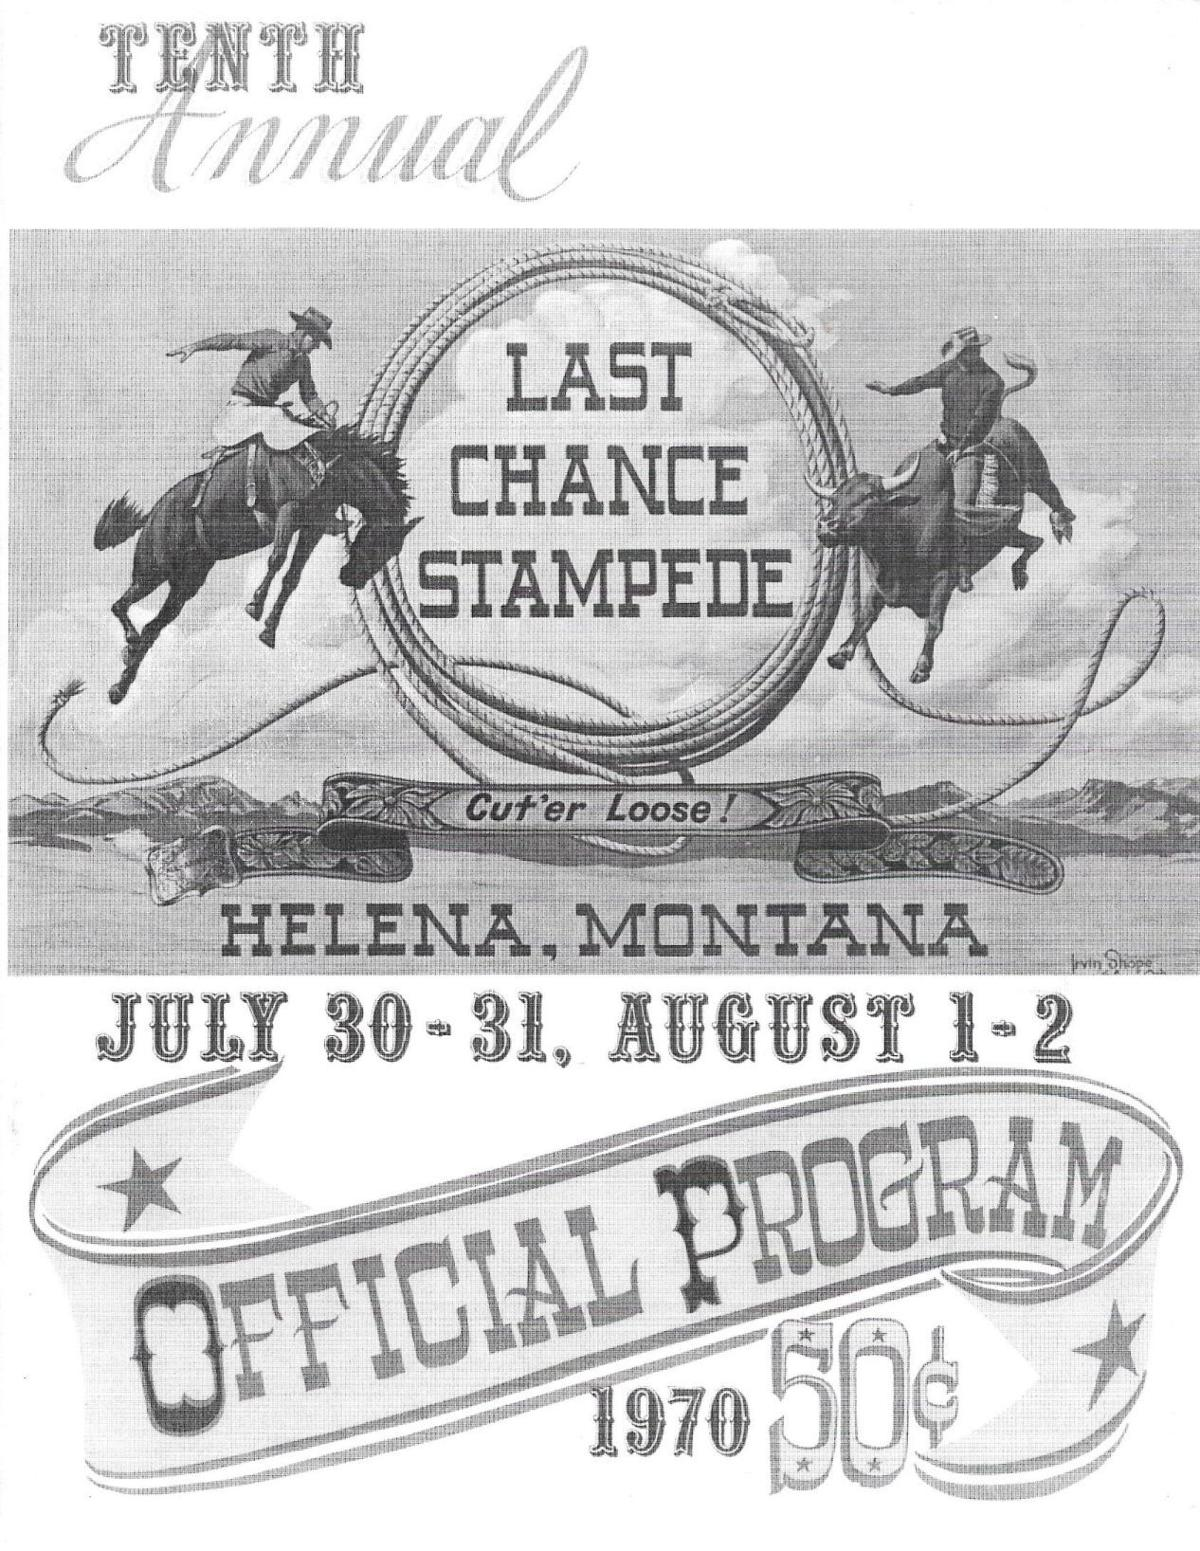 Program from 1970 Last Chance Stampede